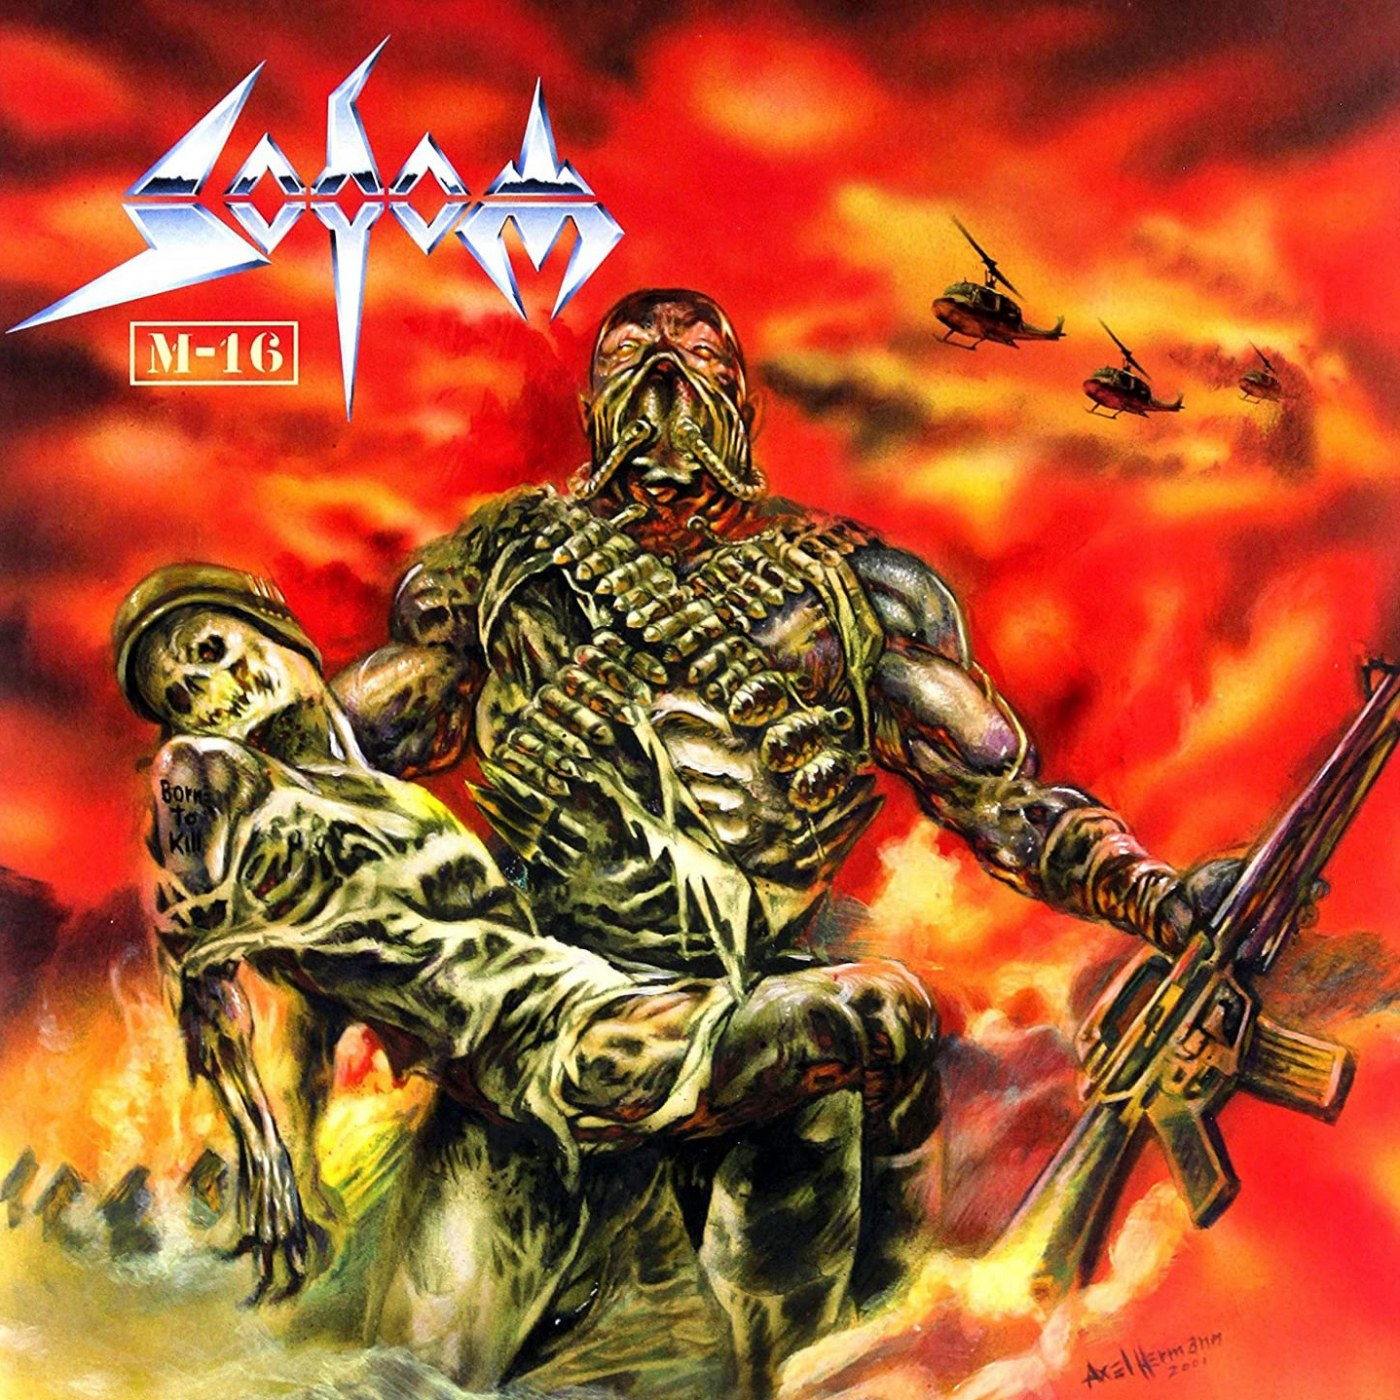 Review for Sodom - M-16